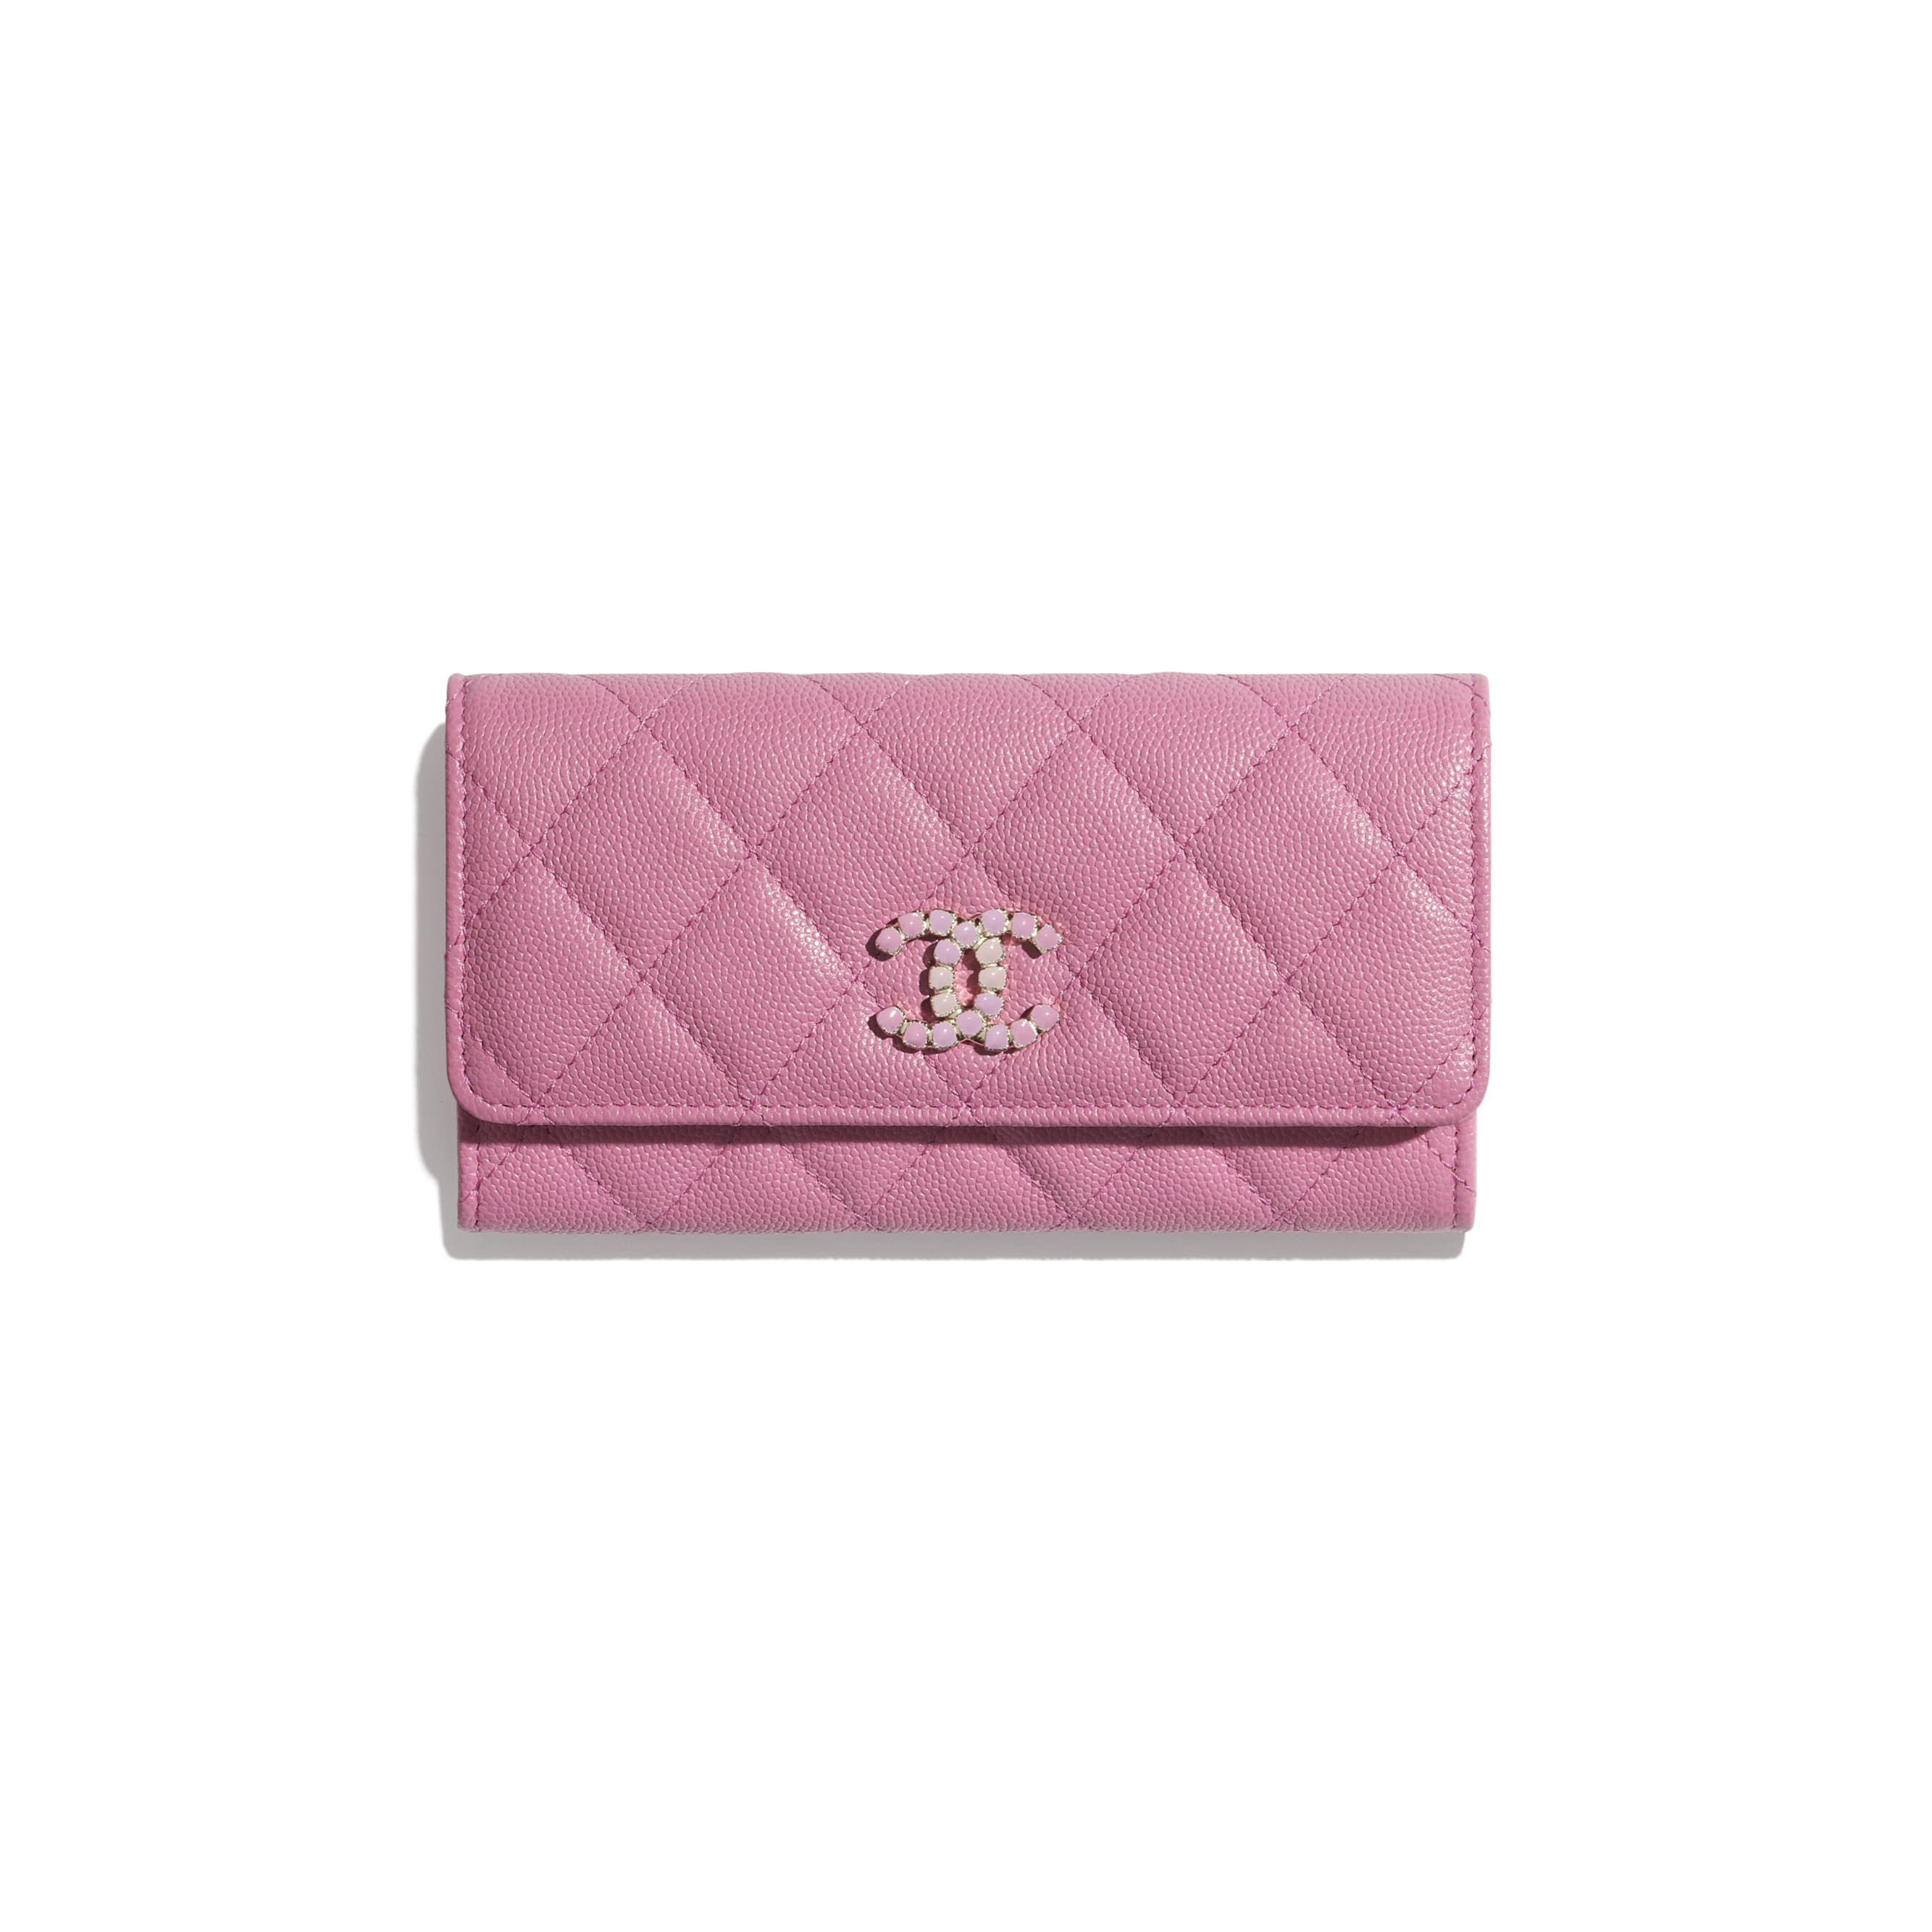 Flap Wallet - Pink - Grained Calfskin & Laquered Gold-Tone Metal - CHANEL - Default view - see standard sized version